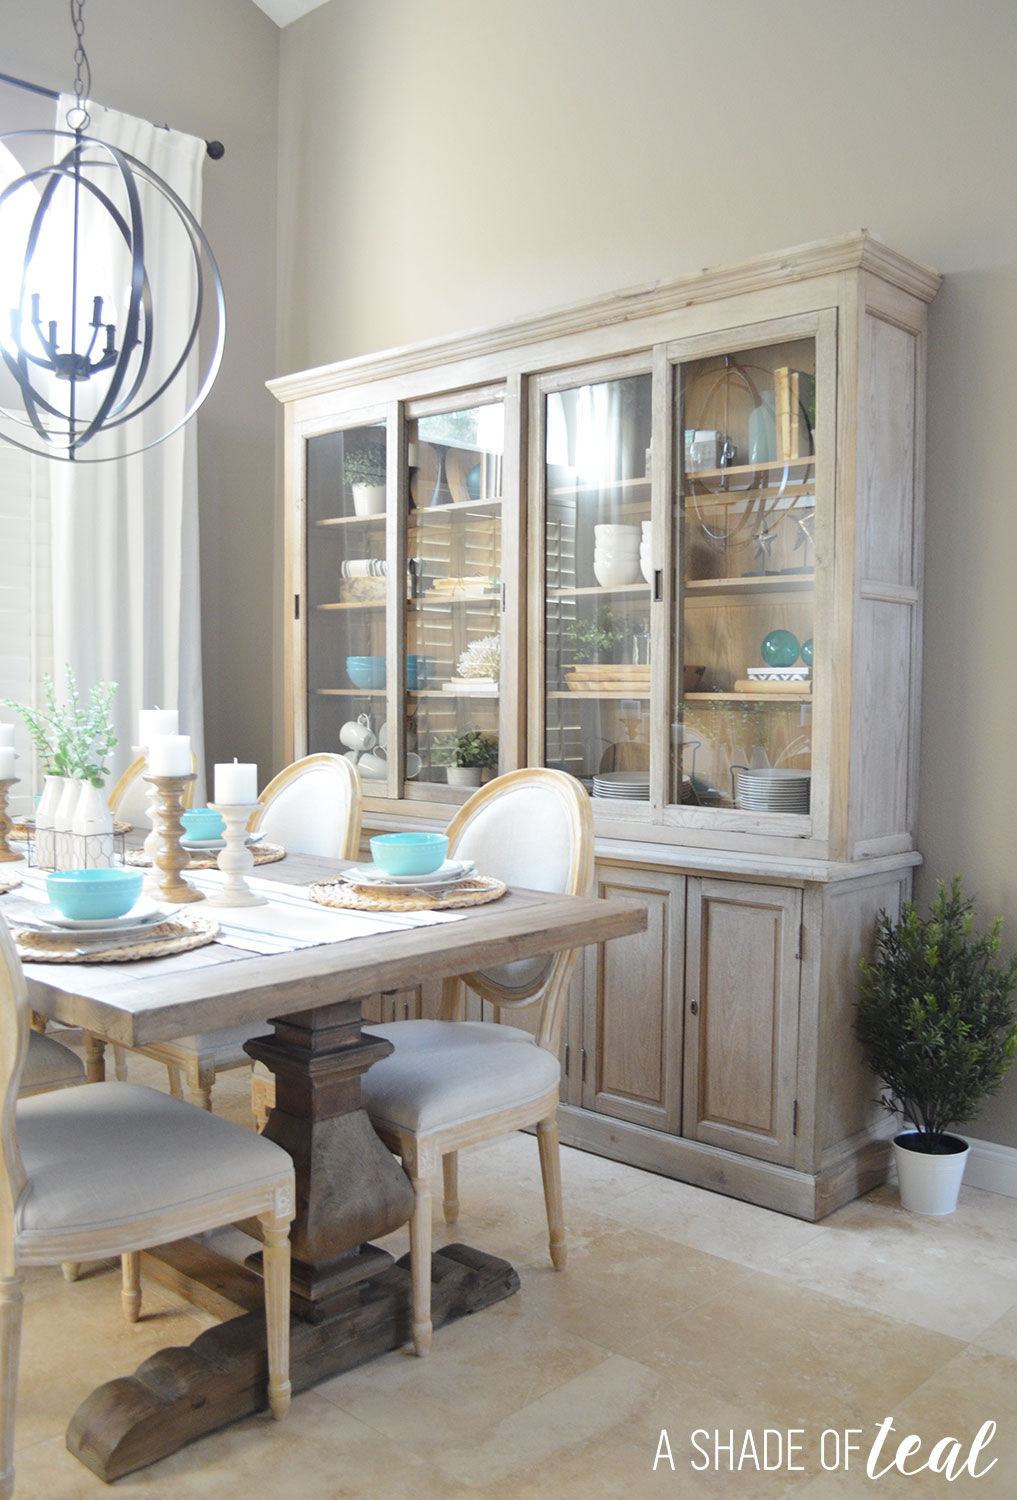 Modern Rustic Cabinet with Urban Home